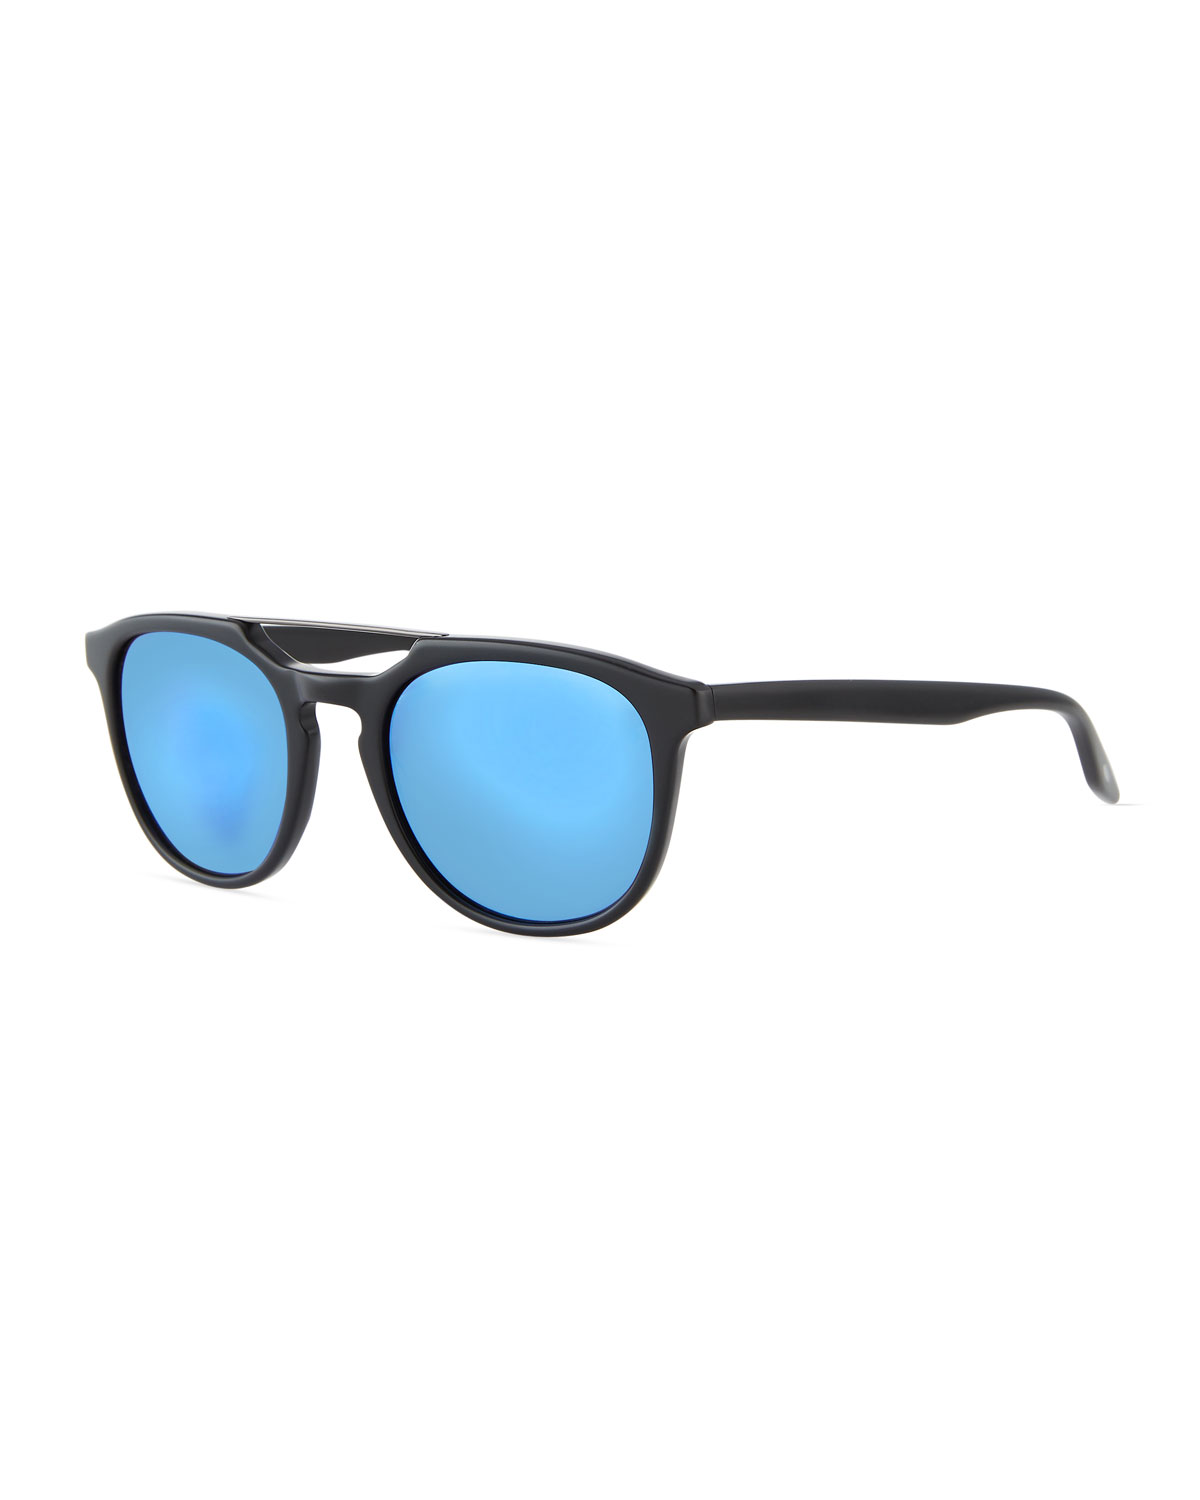 Aviator Sunglasses Without Top  men s rainey round top bar sunglasses black blue free shipping